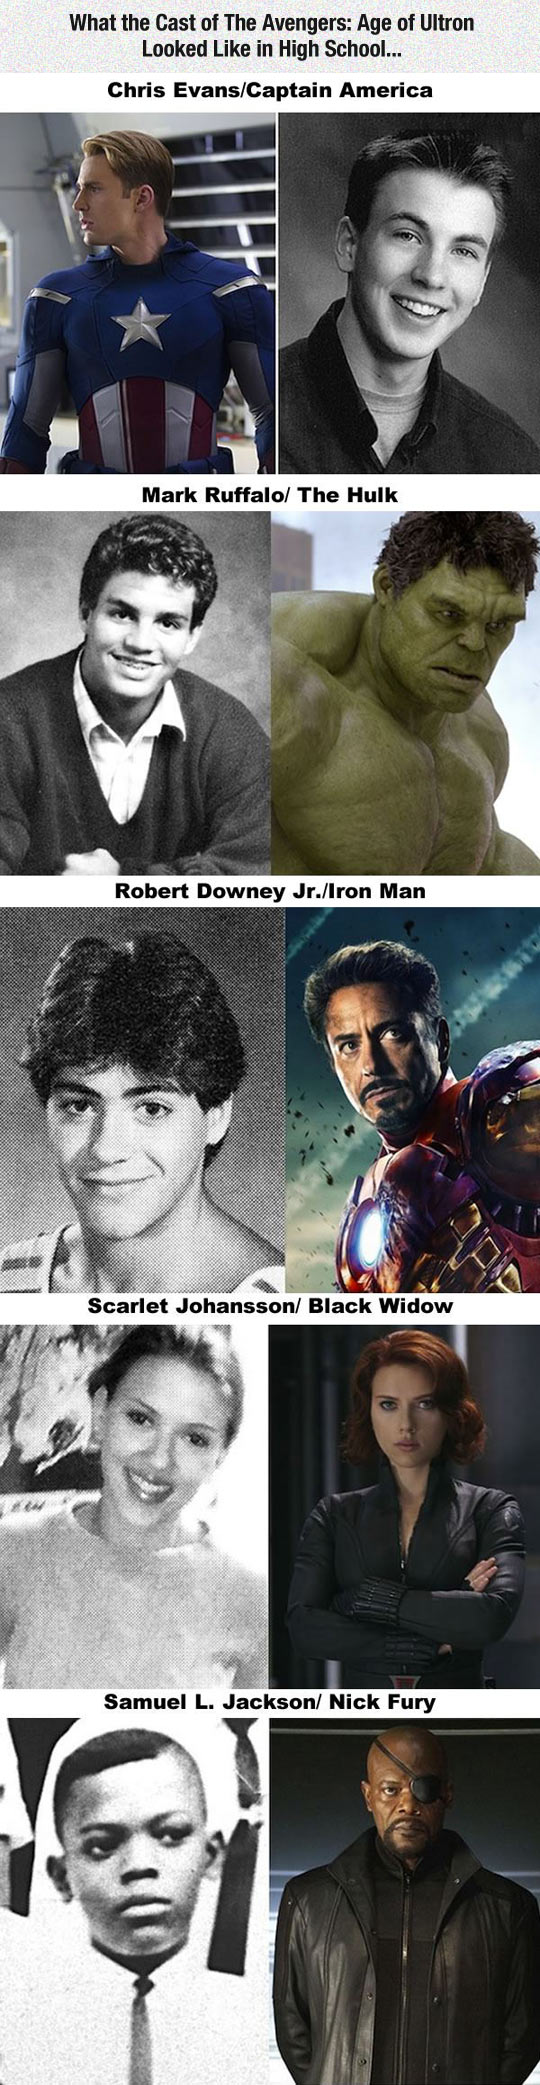 funny-cast-Avengers-high-school